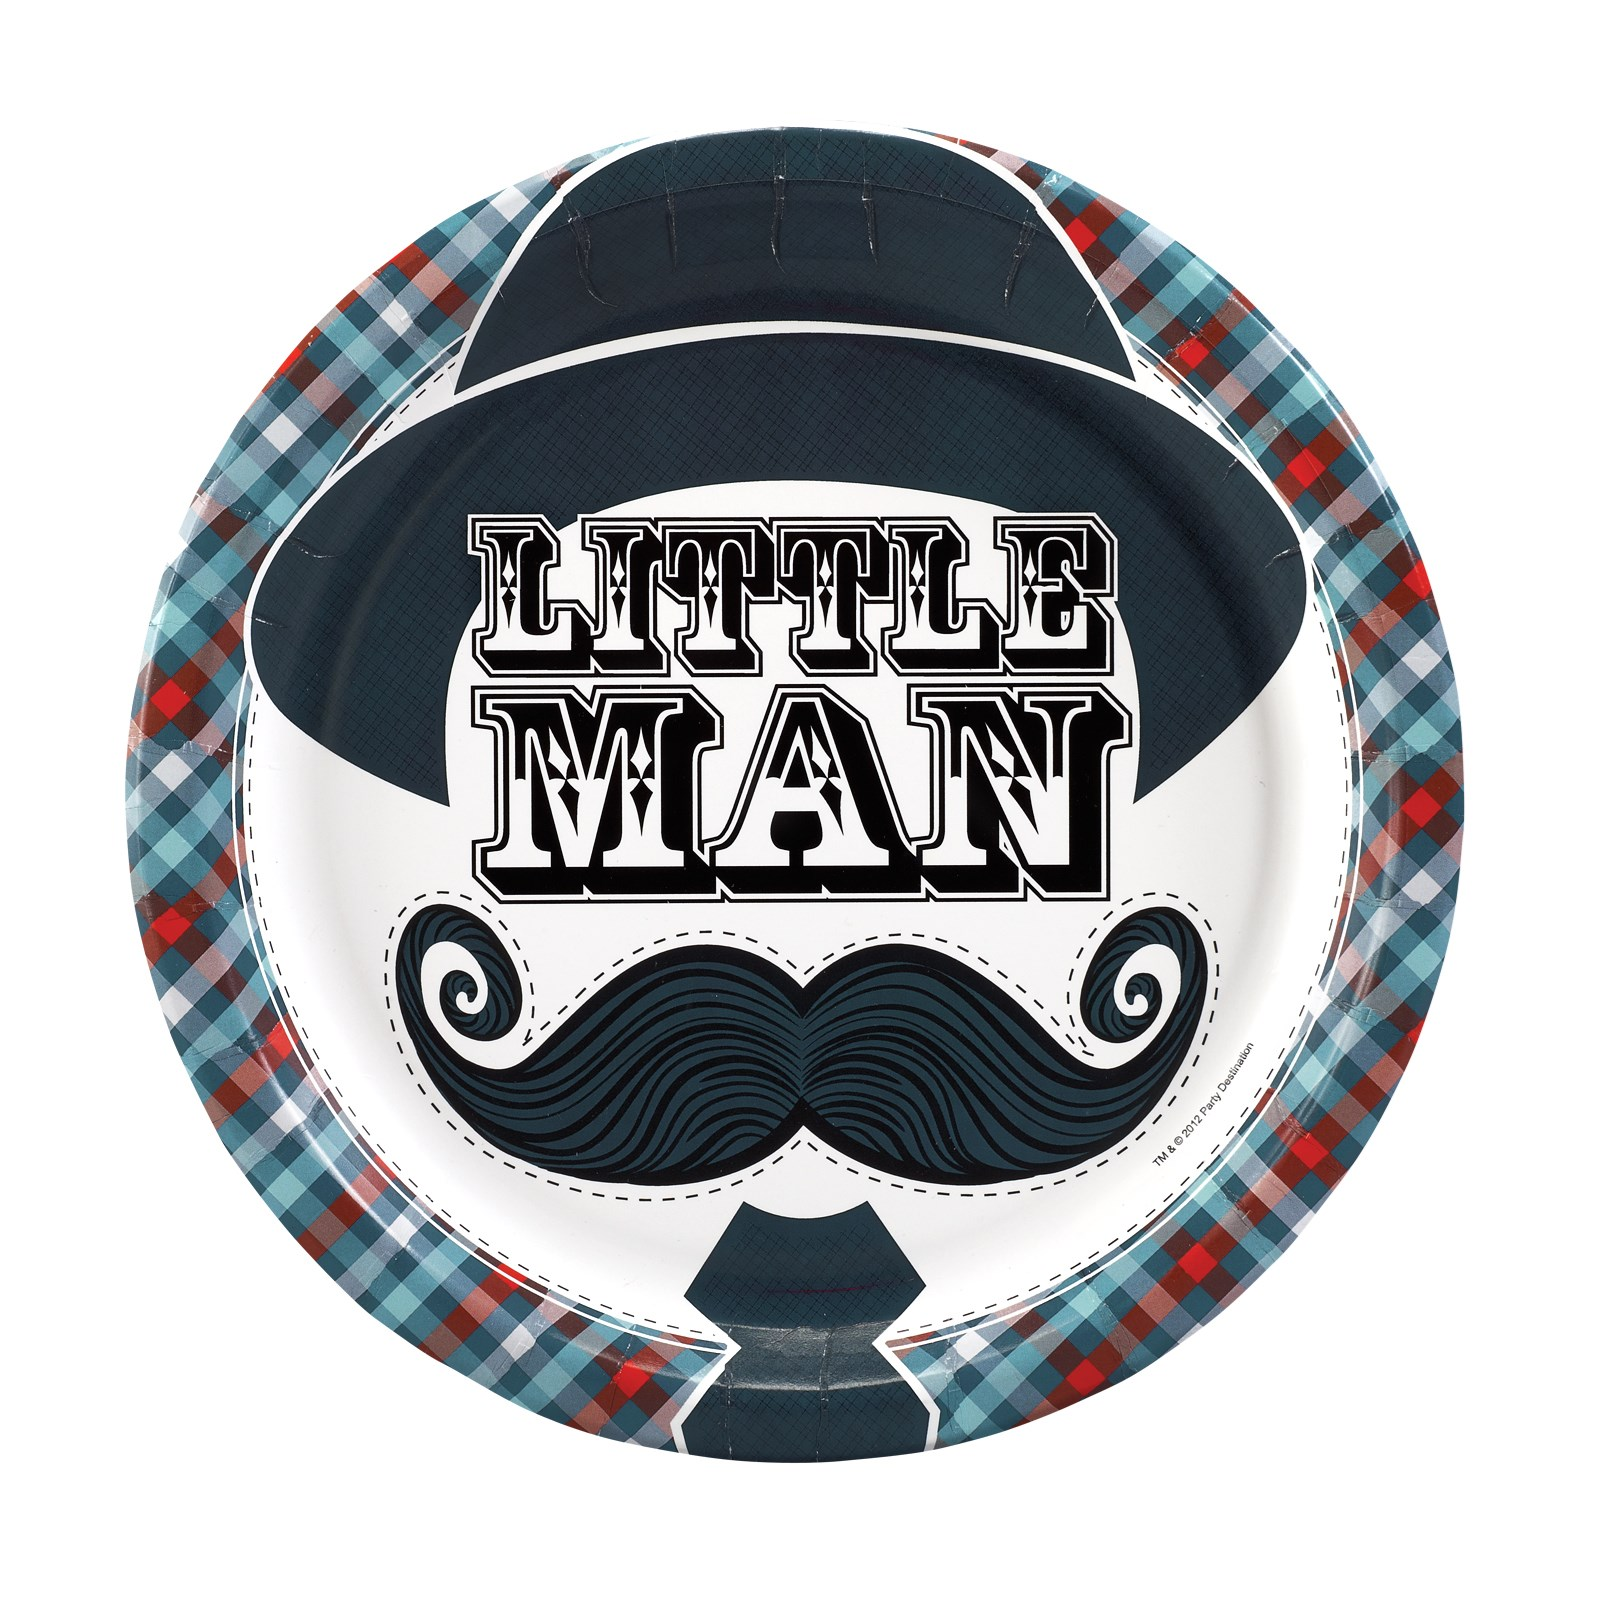 little man [intro] em g / [verse] em weep for yourself, my man, g you'll never be what is in your heart em weep little lion man, g you're not as brave as you were at the start c rate yourself and rape.